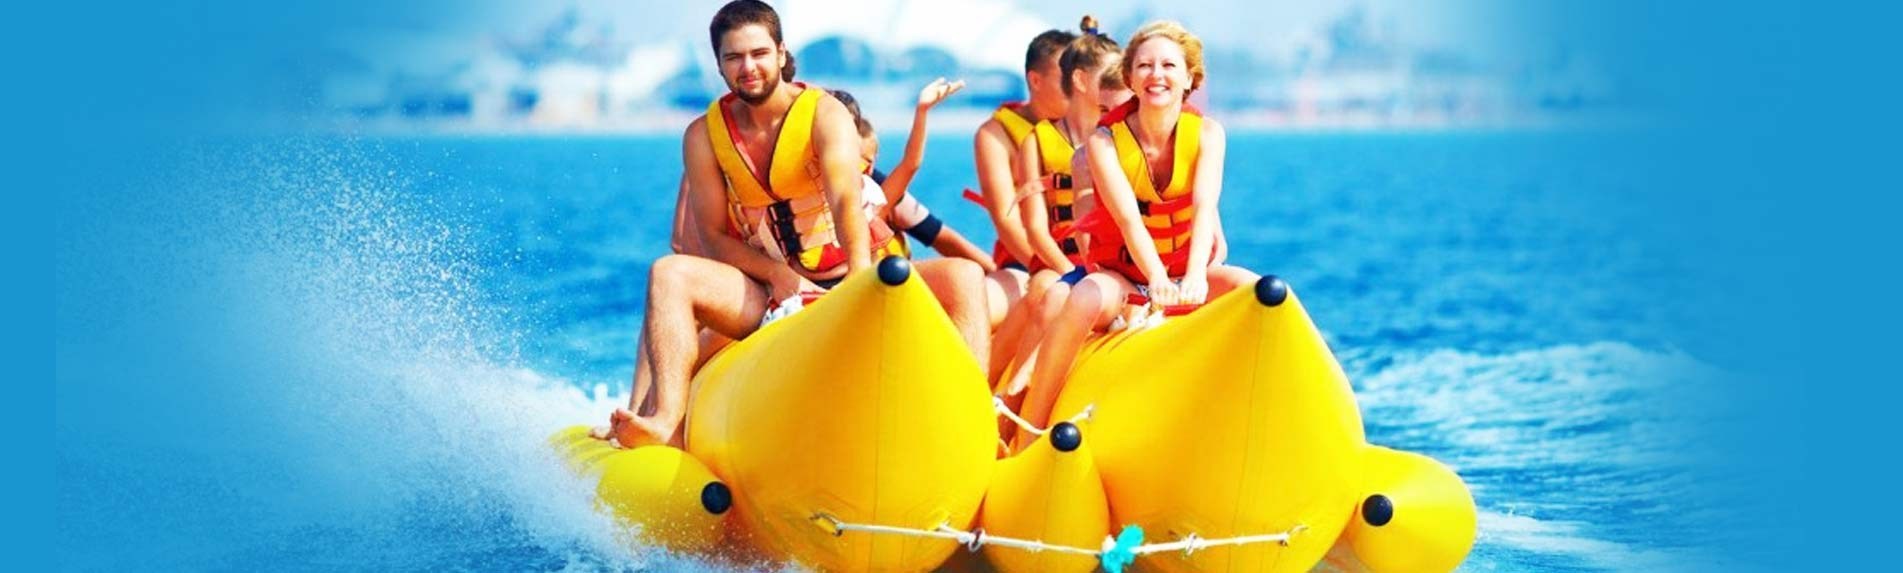 Offers Pontoon Boats For Better Beach Trips